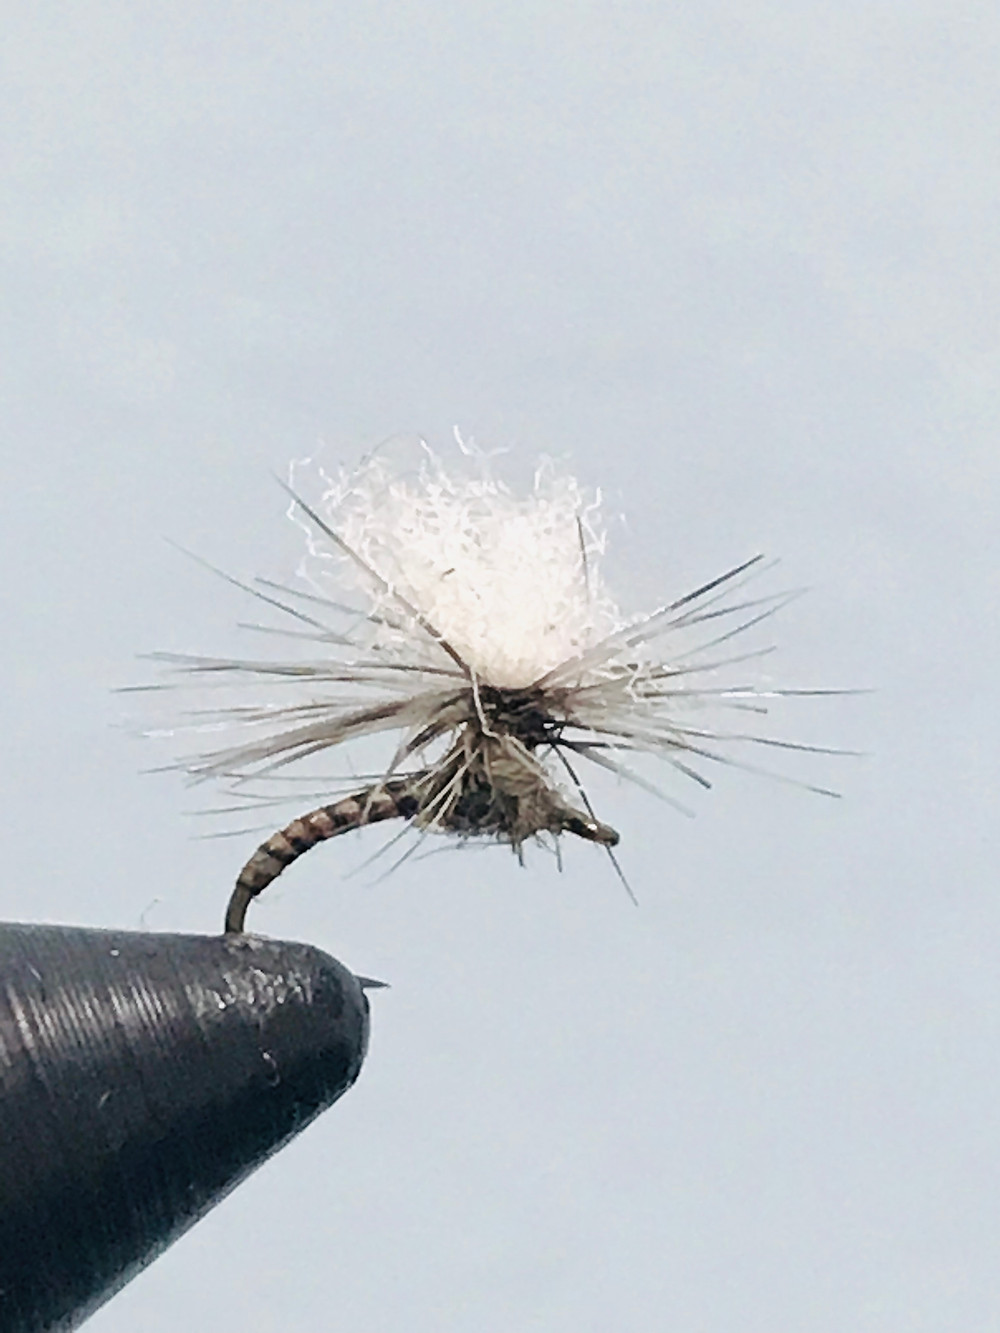 Emerger fly fishing pattern